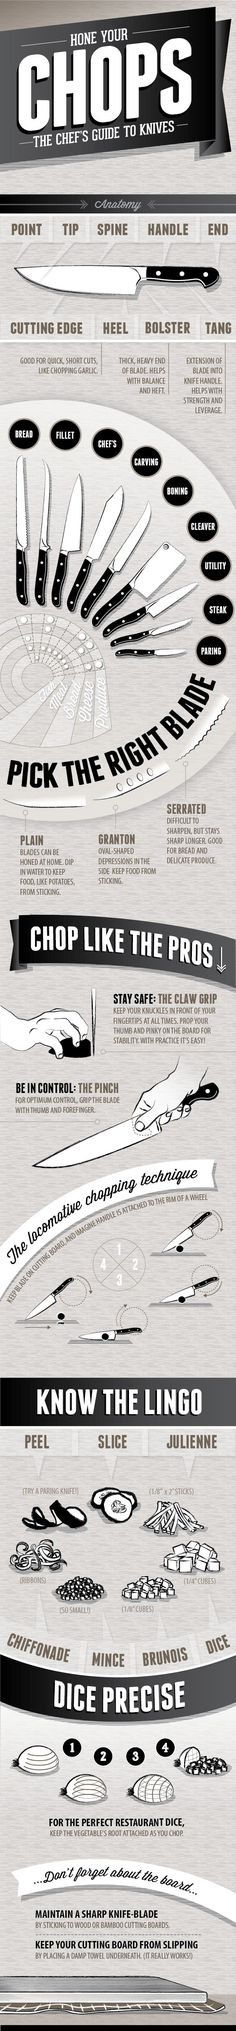 How To Be Good At Knives